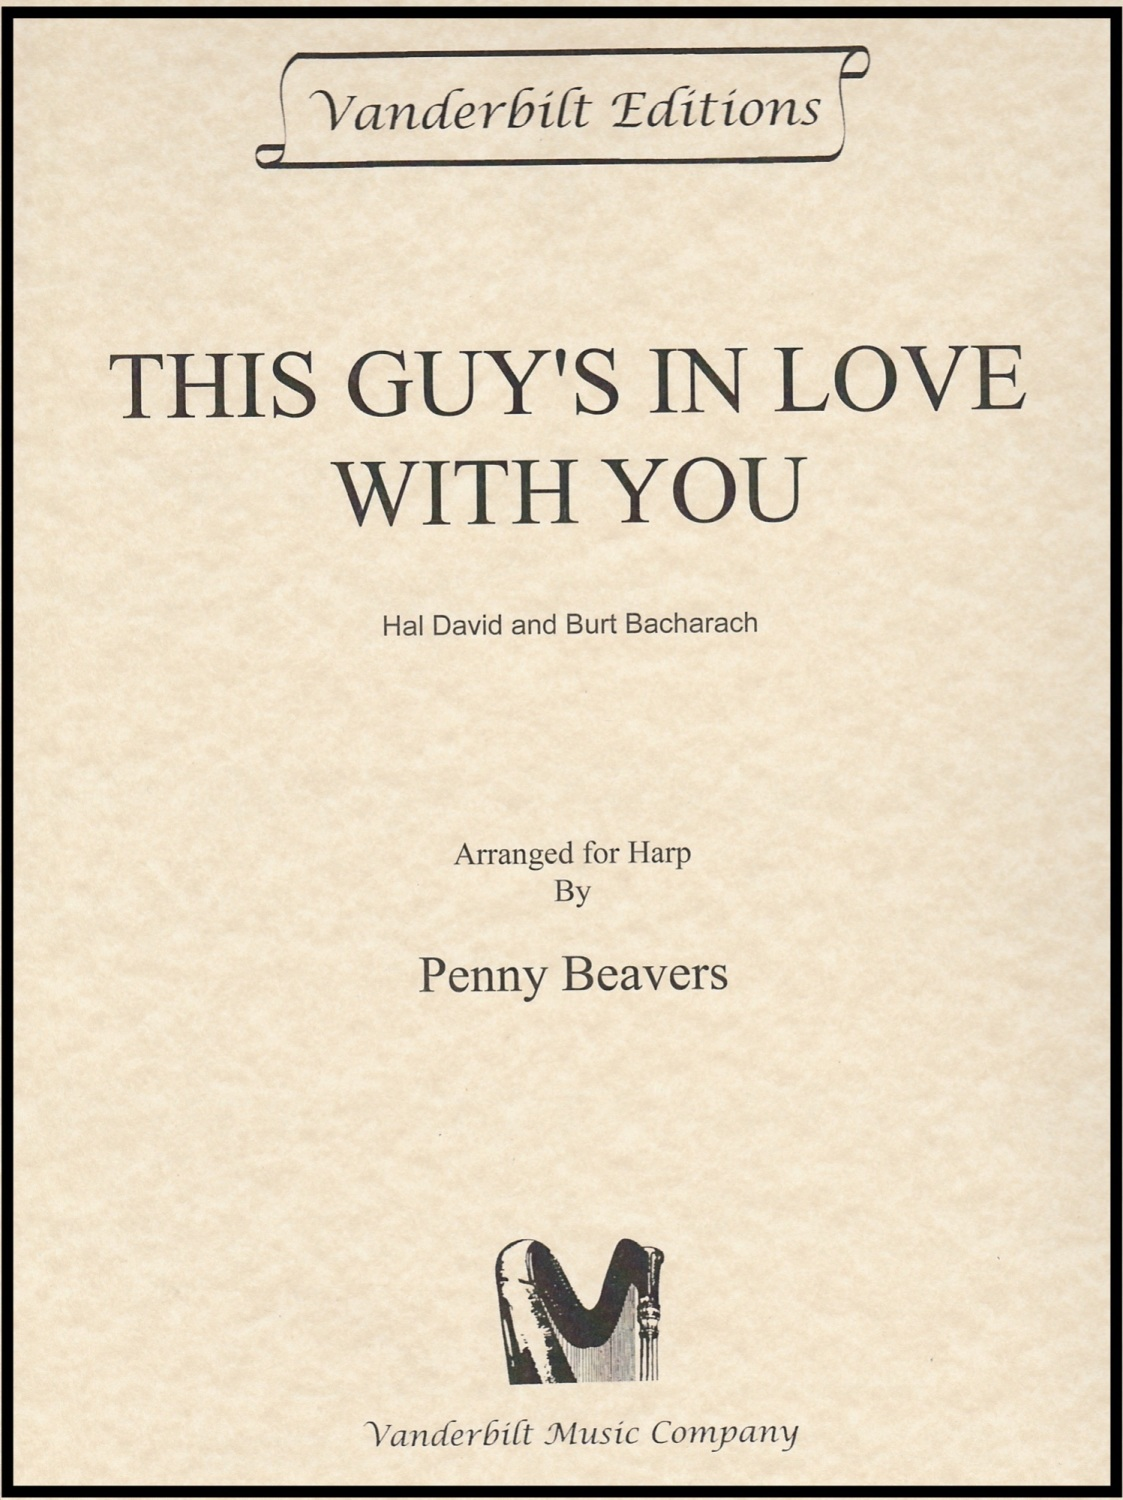 This Guy's in Love with You - Hal David & Burt Bacharach